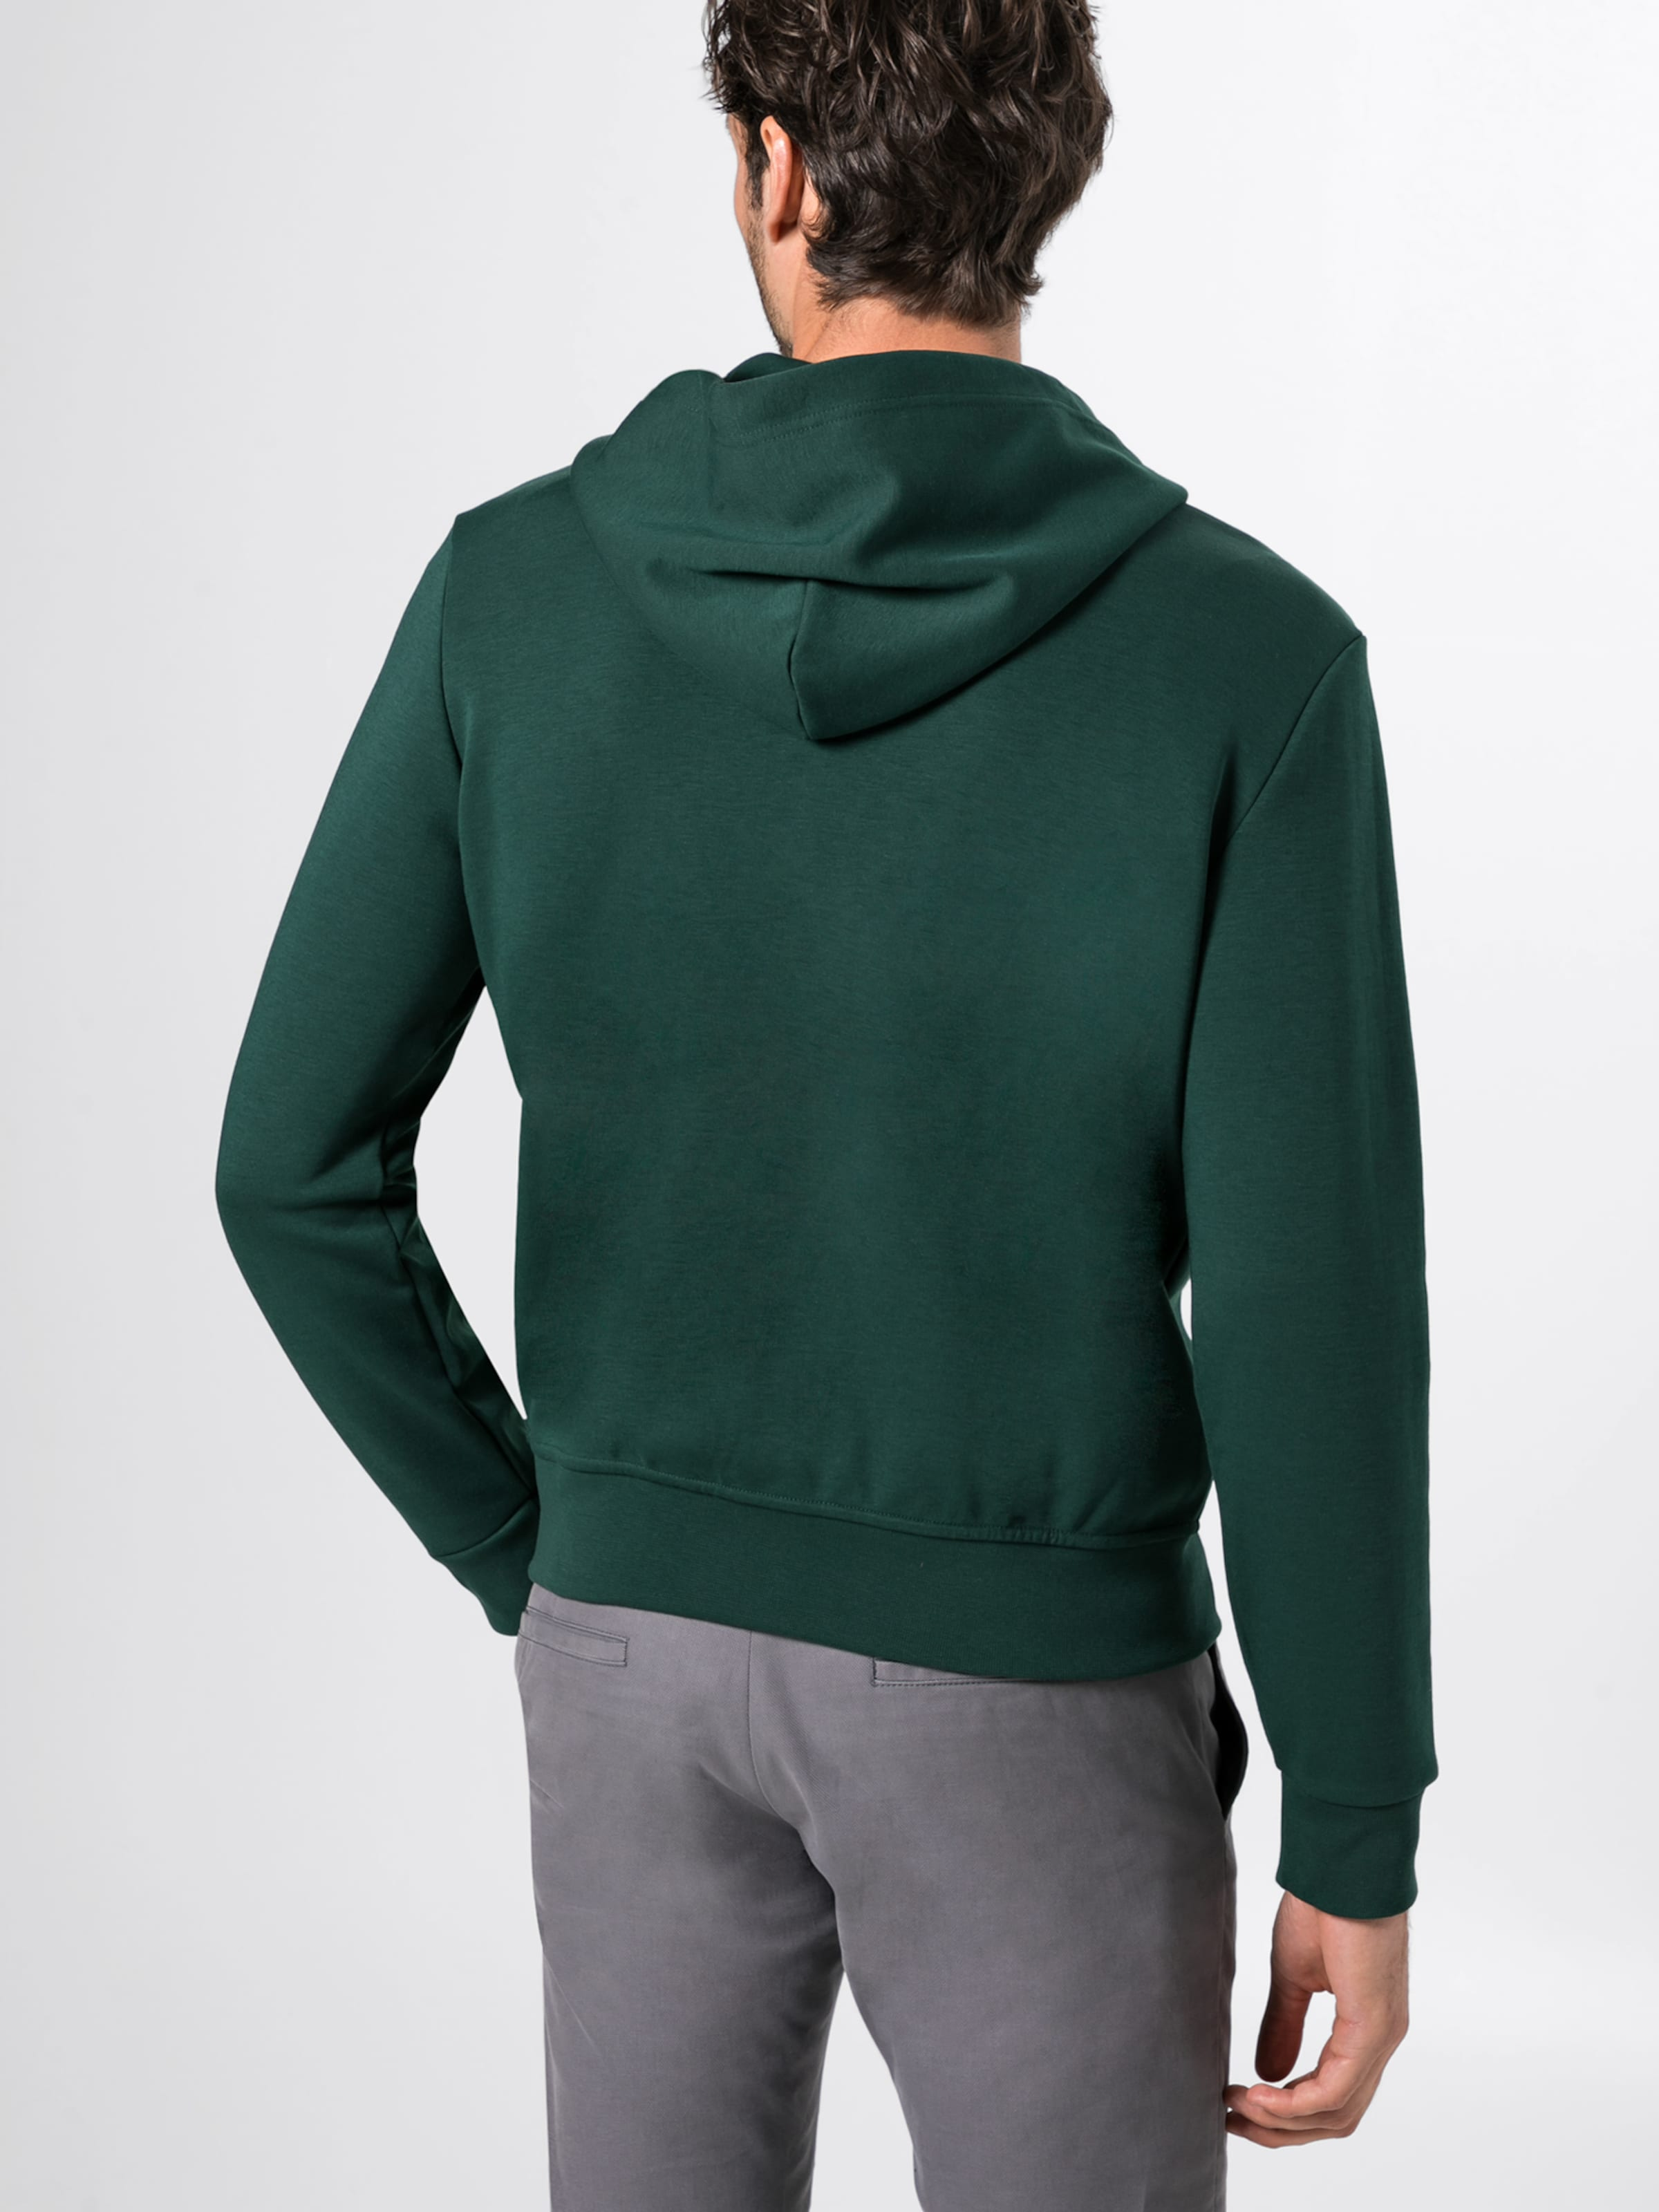 'lsfzhoodm1 Polo In long knit' Dunkelgrün Ralph Lauren Sweatjacke Sleeve QCxBhotsrd